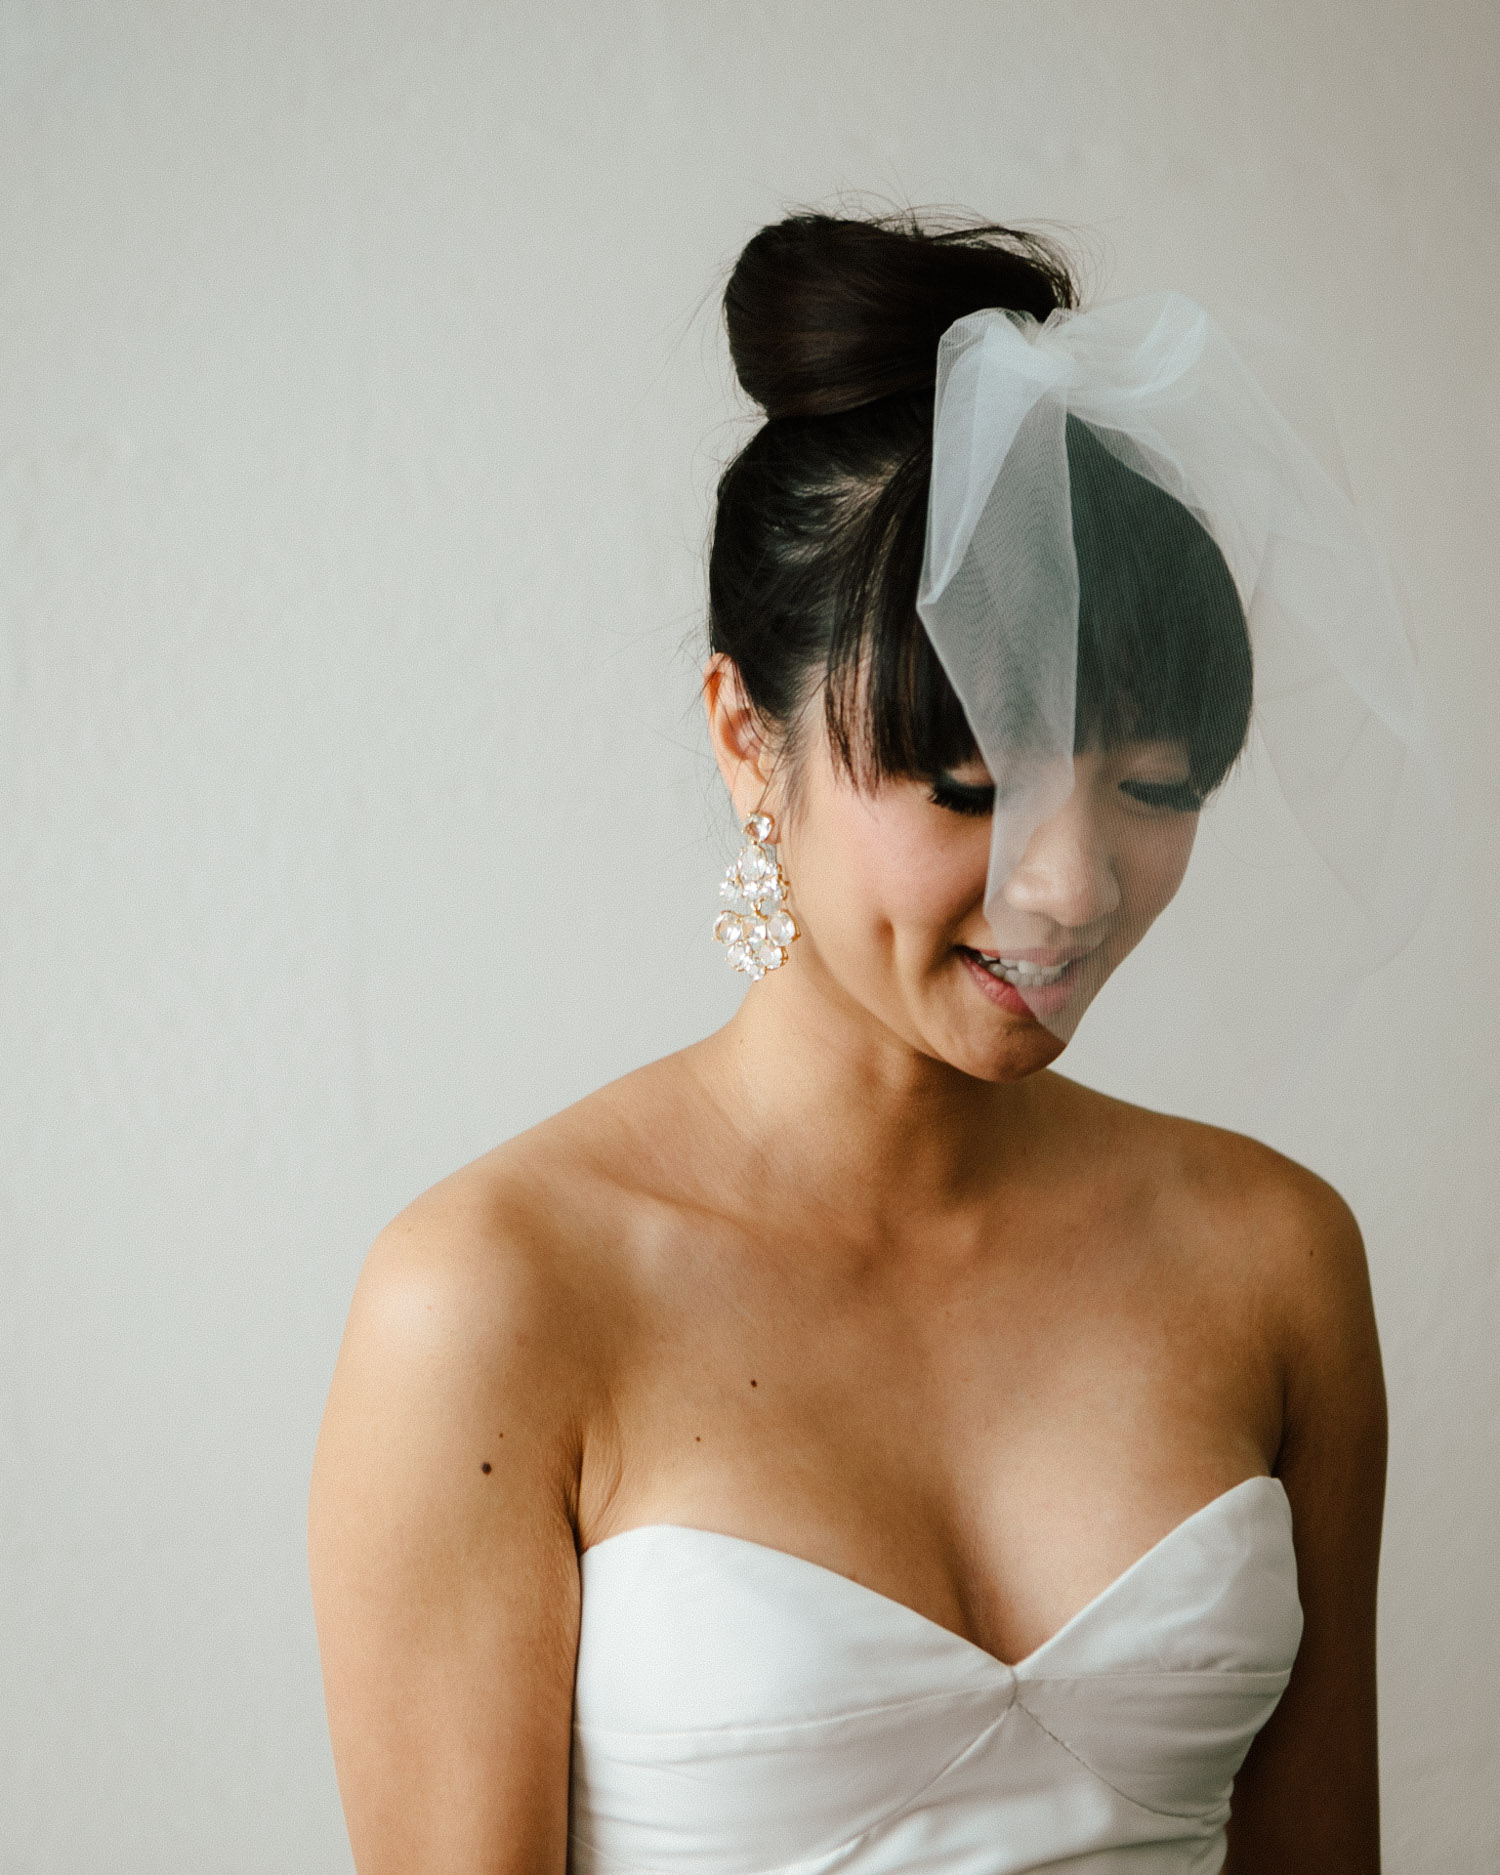 Los Angeles Wedding Photographer, The Elysian  - The Gathering Season x weareleoandkat 043.JPG